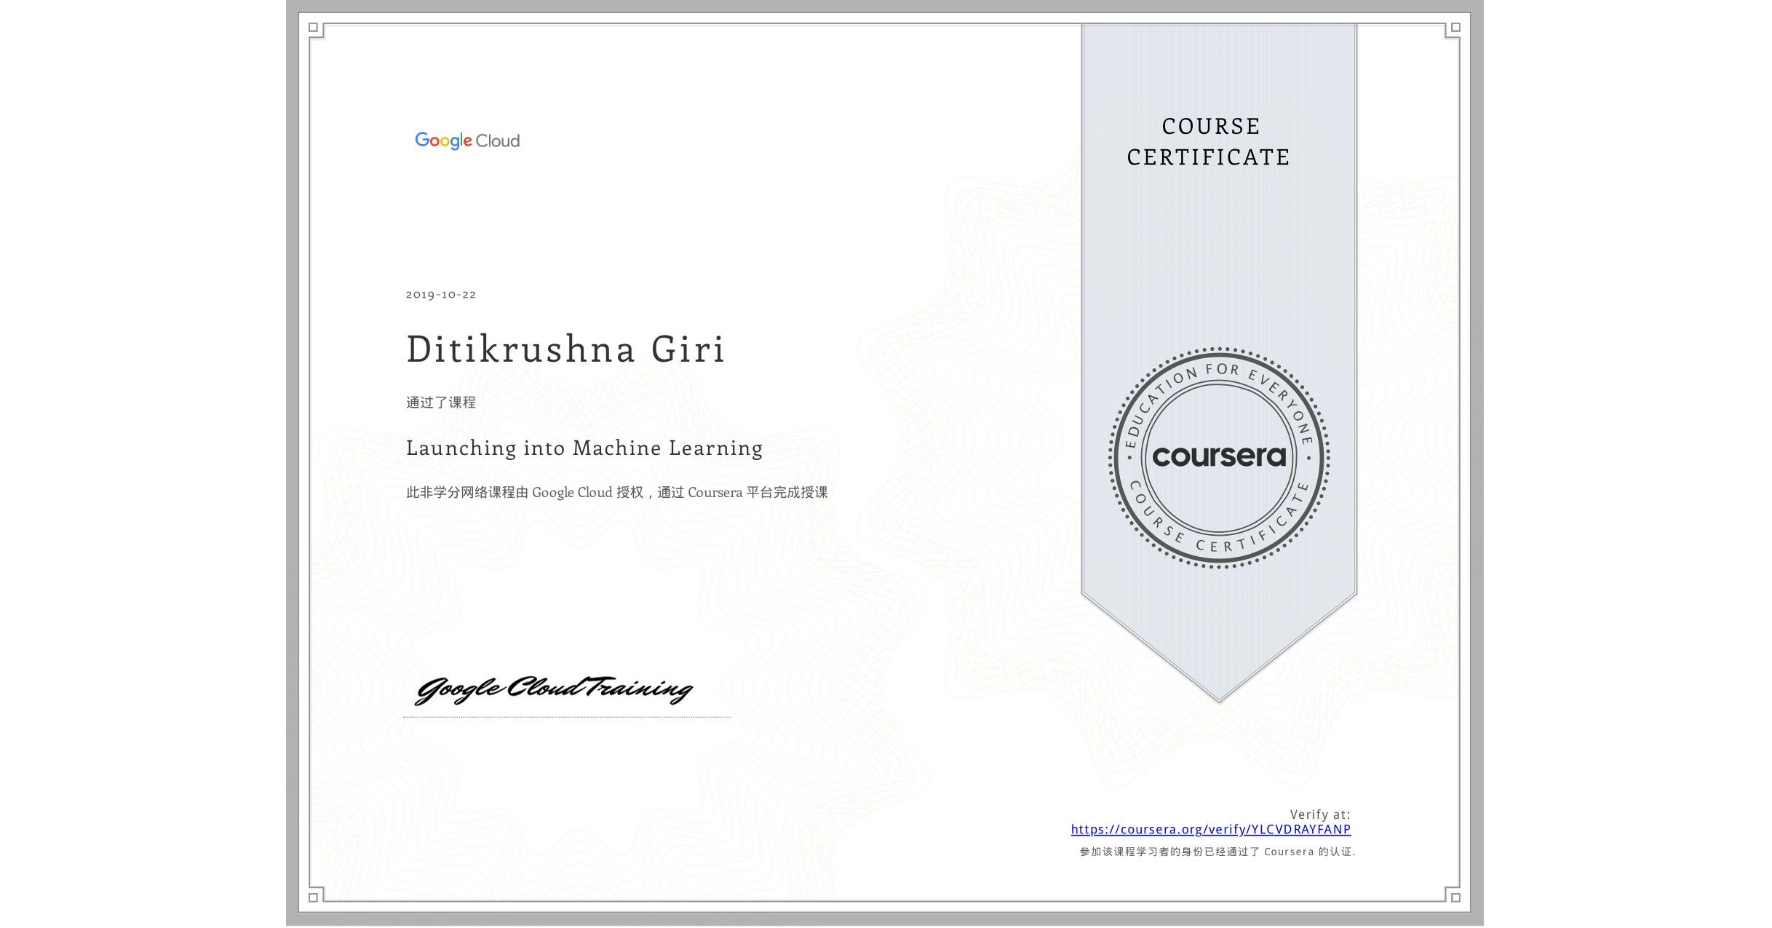 View certificate for Ditikrushna Giri, Launching into Machine Learning, an online non-credit course authorized by Google Cloud and offered through Coursera